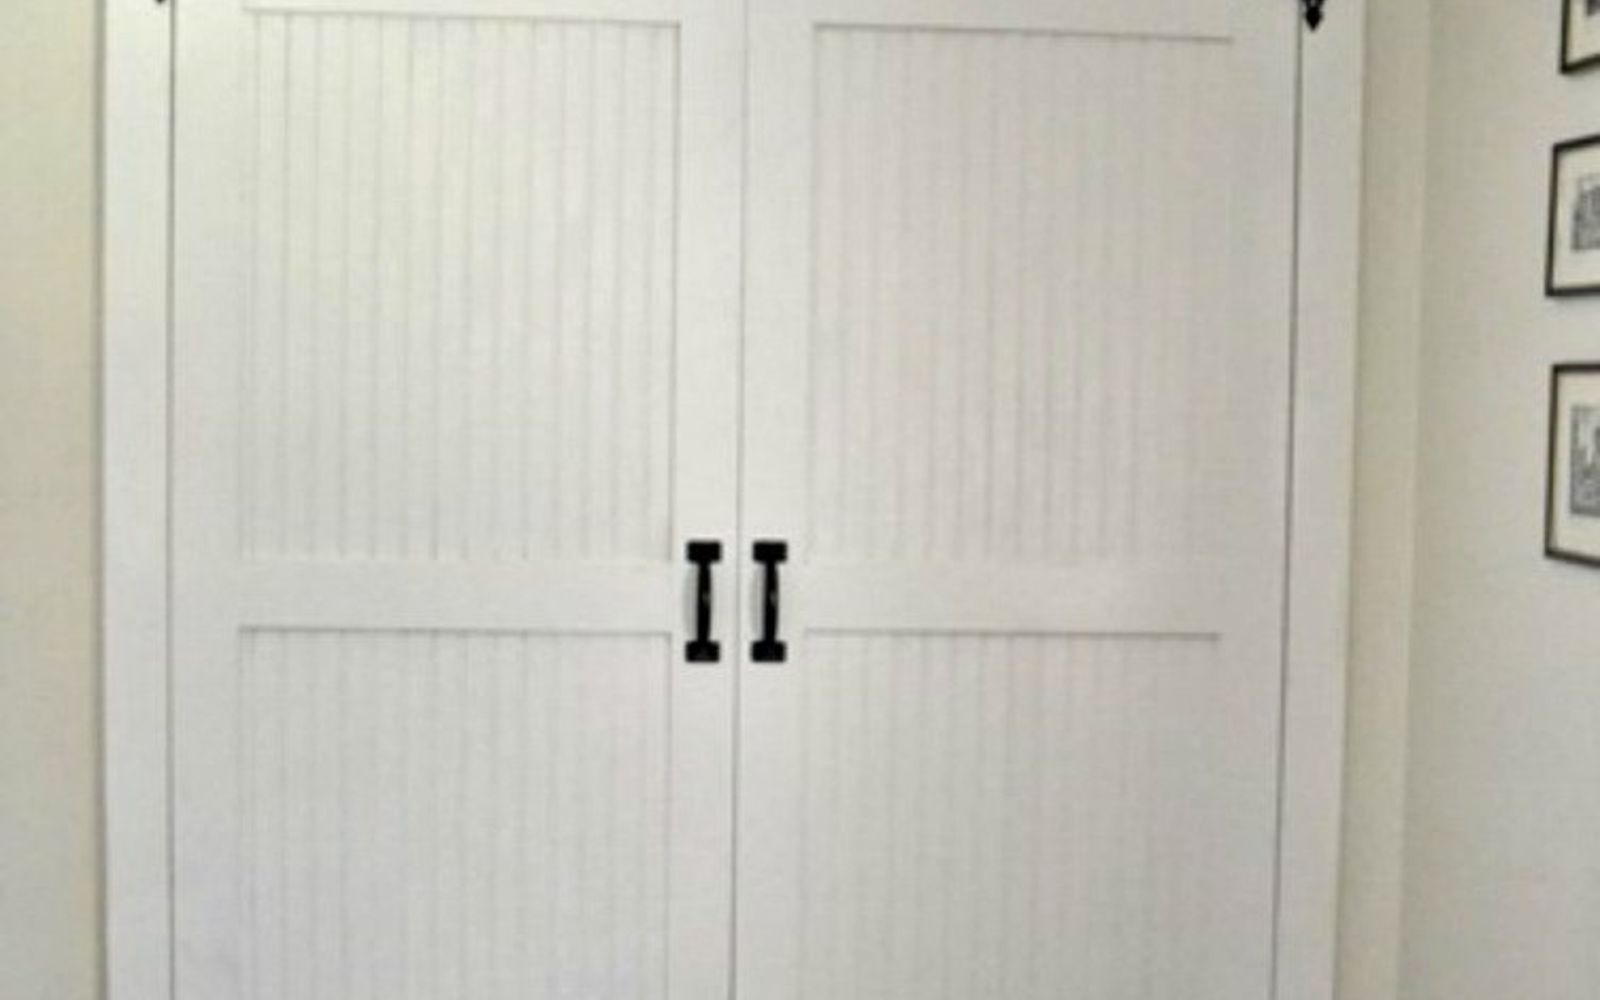 s why everyone is freaking out over these country cottage rooms, bedroom ideas, entertainment rec rooms, home decor, These barn style doors add so much character